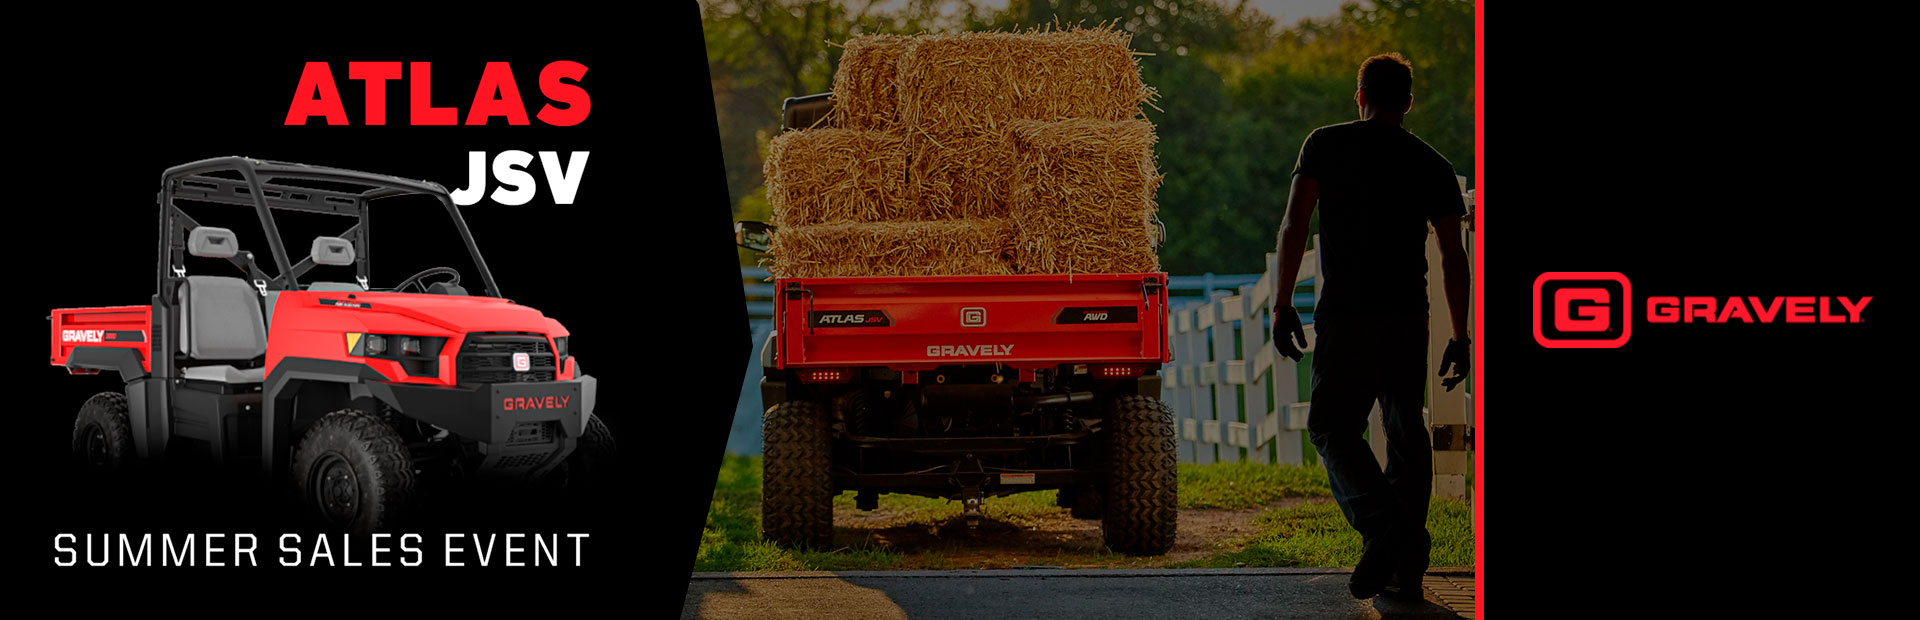 Gravely: THE ATLAS JSV® SUMMER SALES EVENT